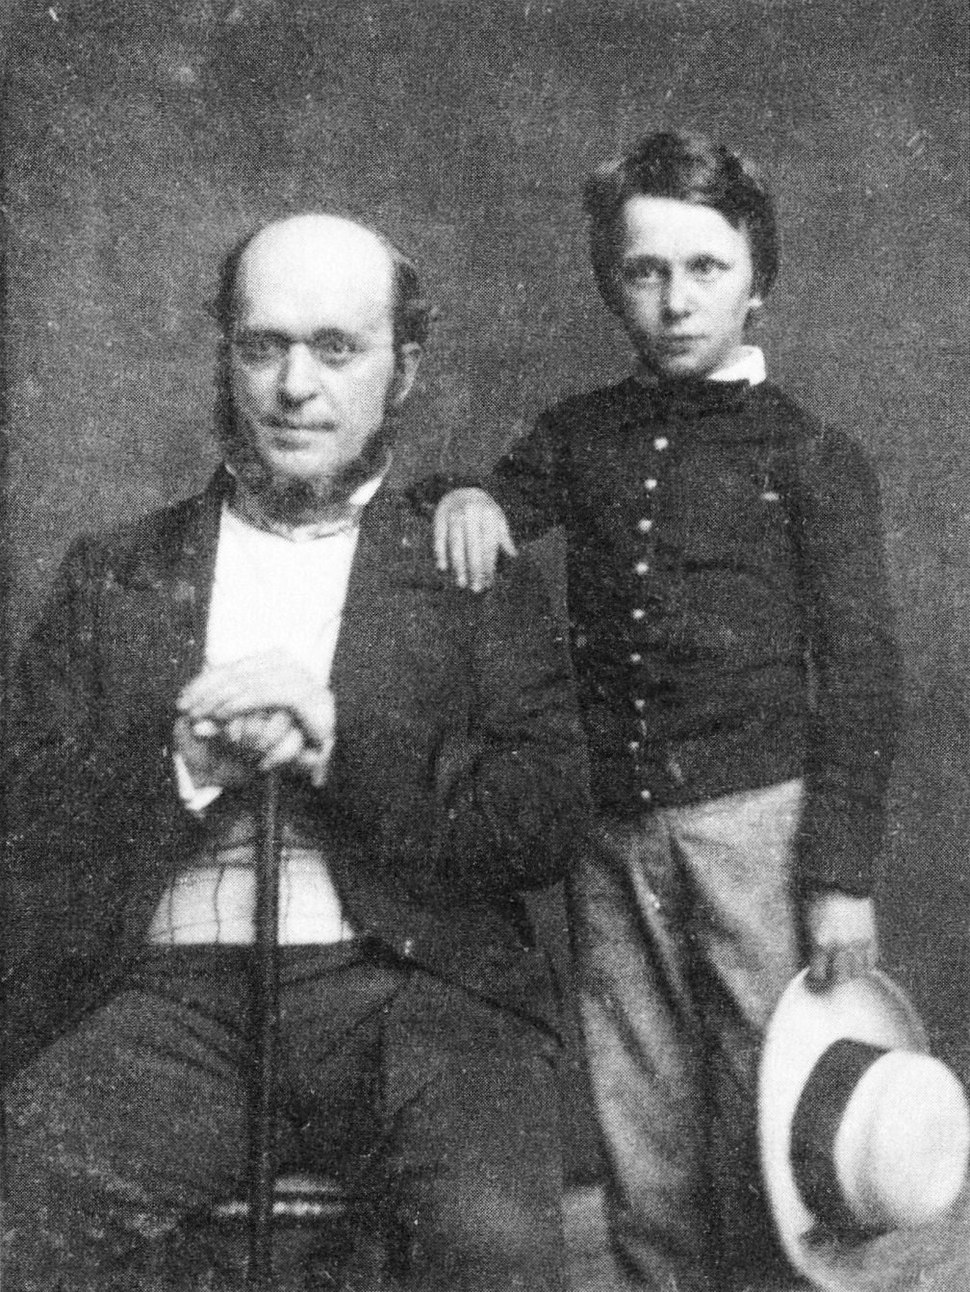 Henry James Sr. and Henry James Jr. in 1854